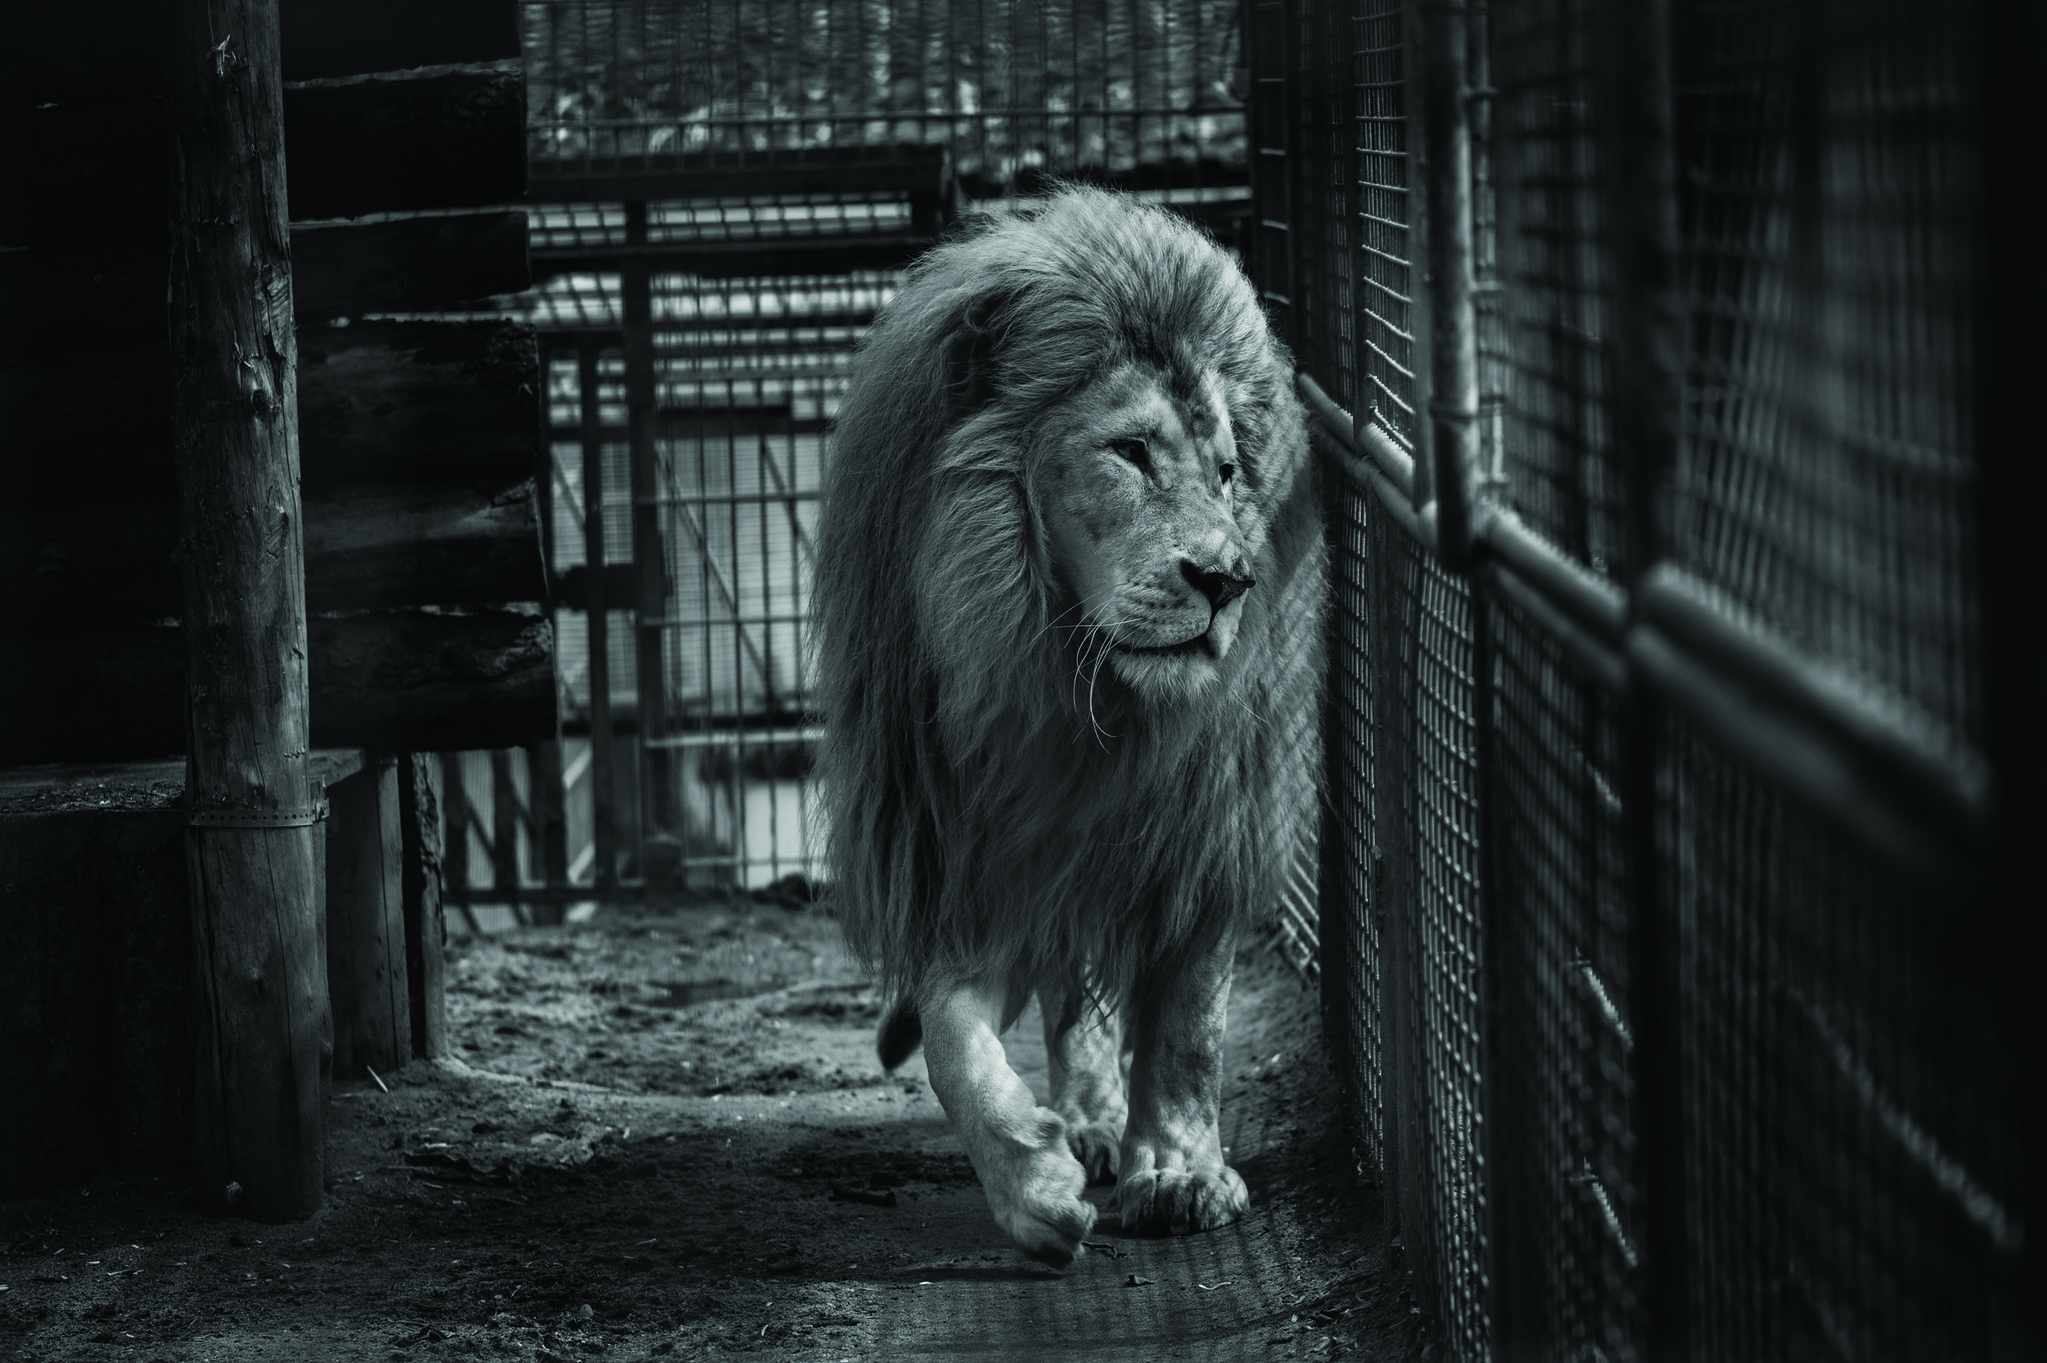 Animals in European Zoos: A Photo Exhibition (c) Jo-Anne McArthur